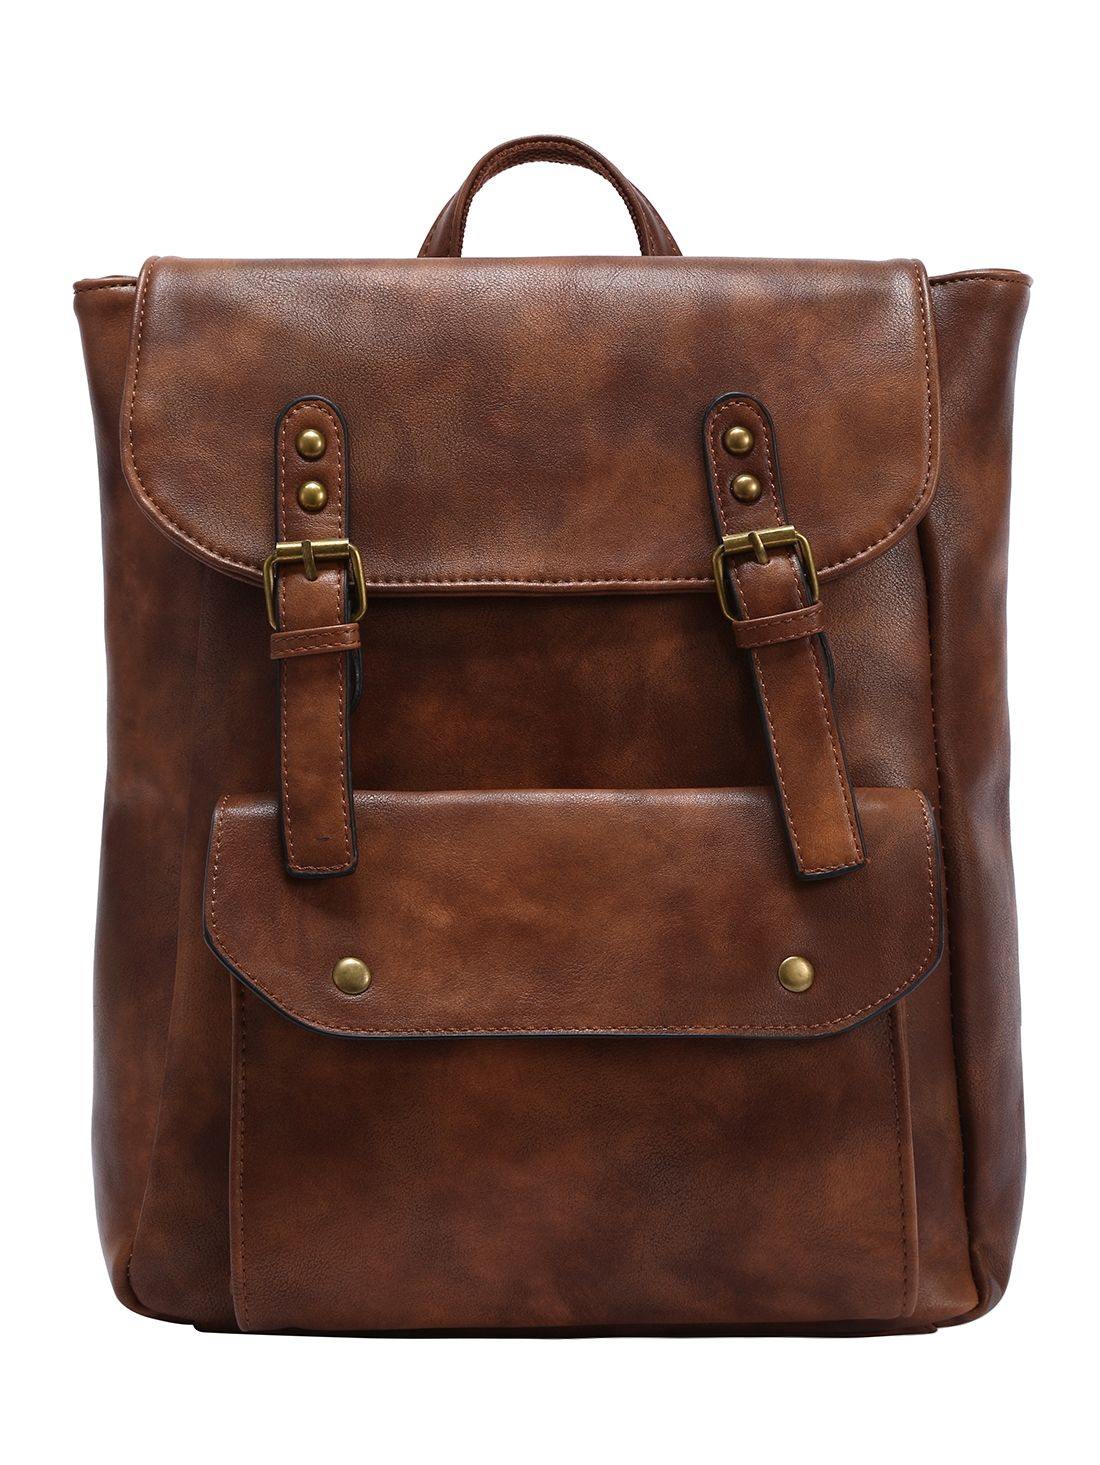 67a0f473d7 Shop Faux Leather Double Buckle Strap Backpack - Brown online. SheIn offers Faux  Leather Double Buckle Strap Backpack - Brown   more to fit your fashionable  ...